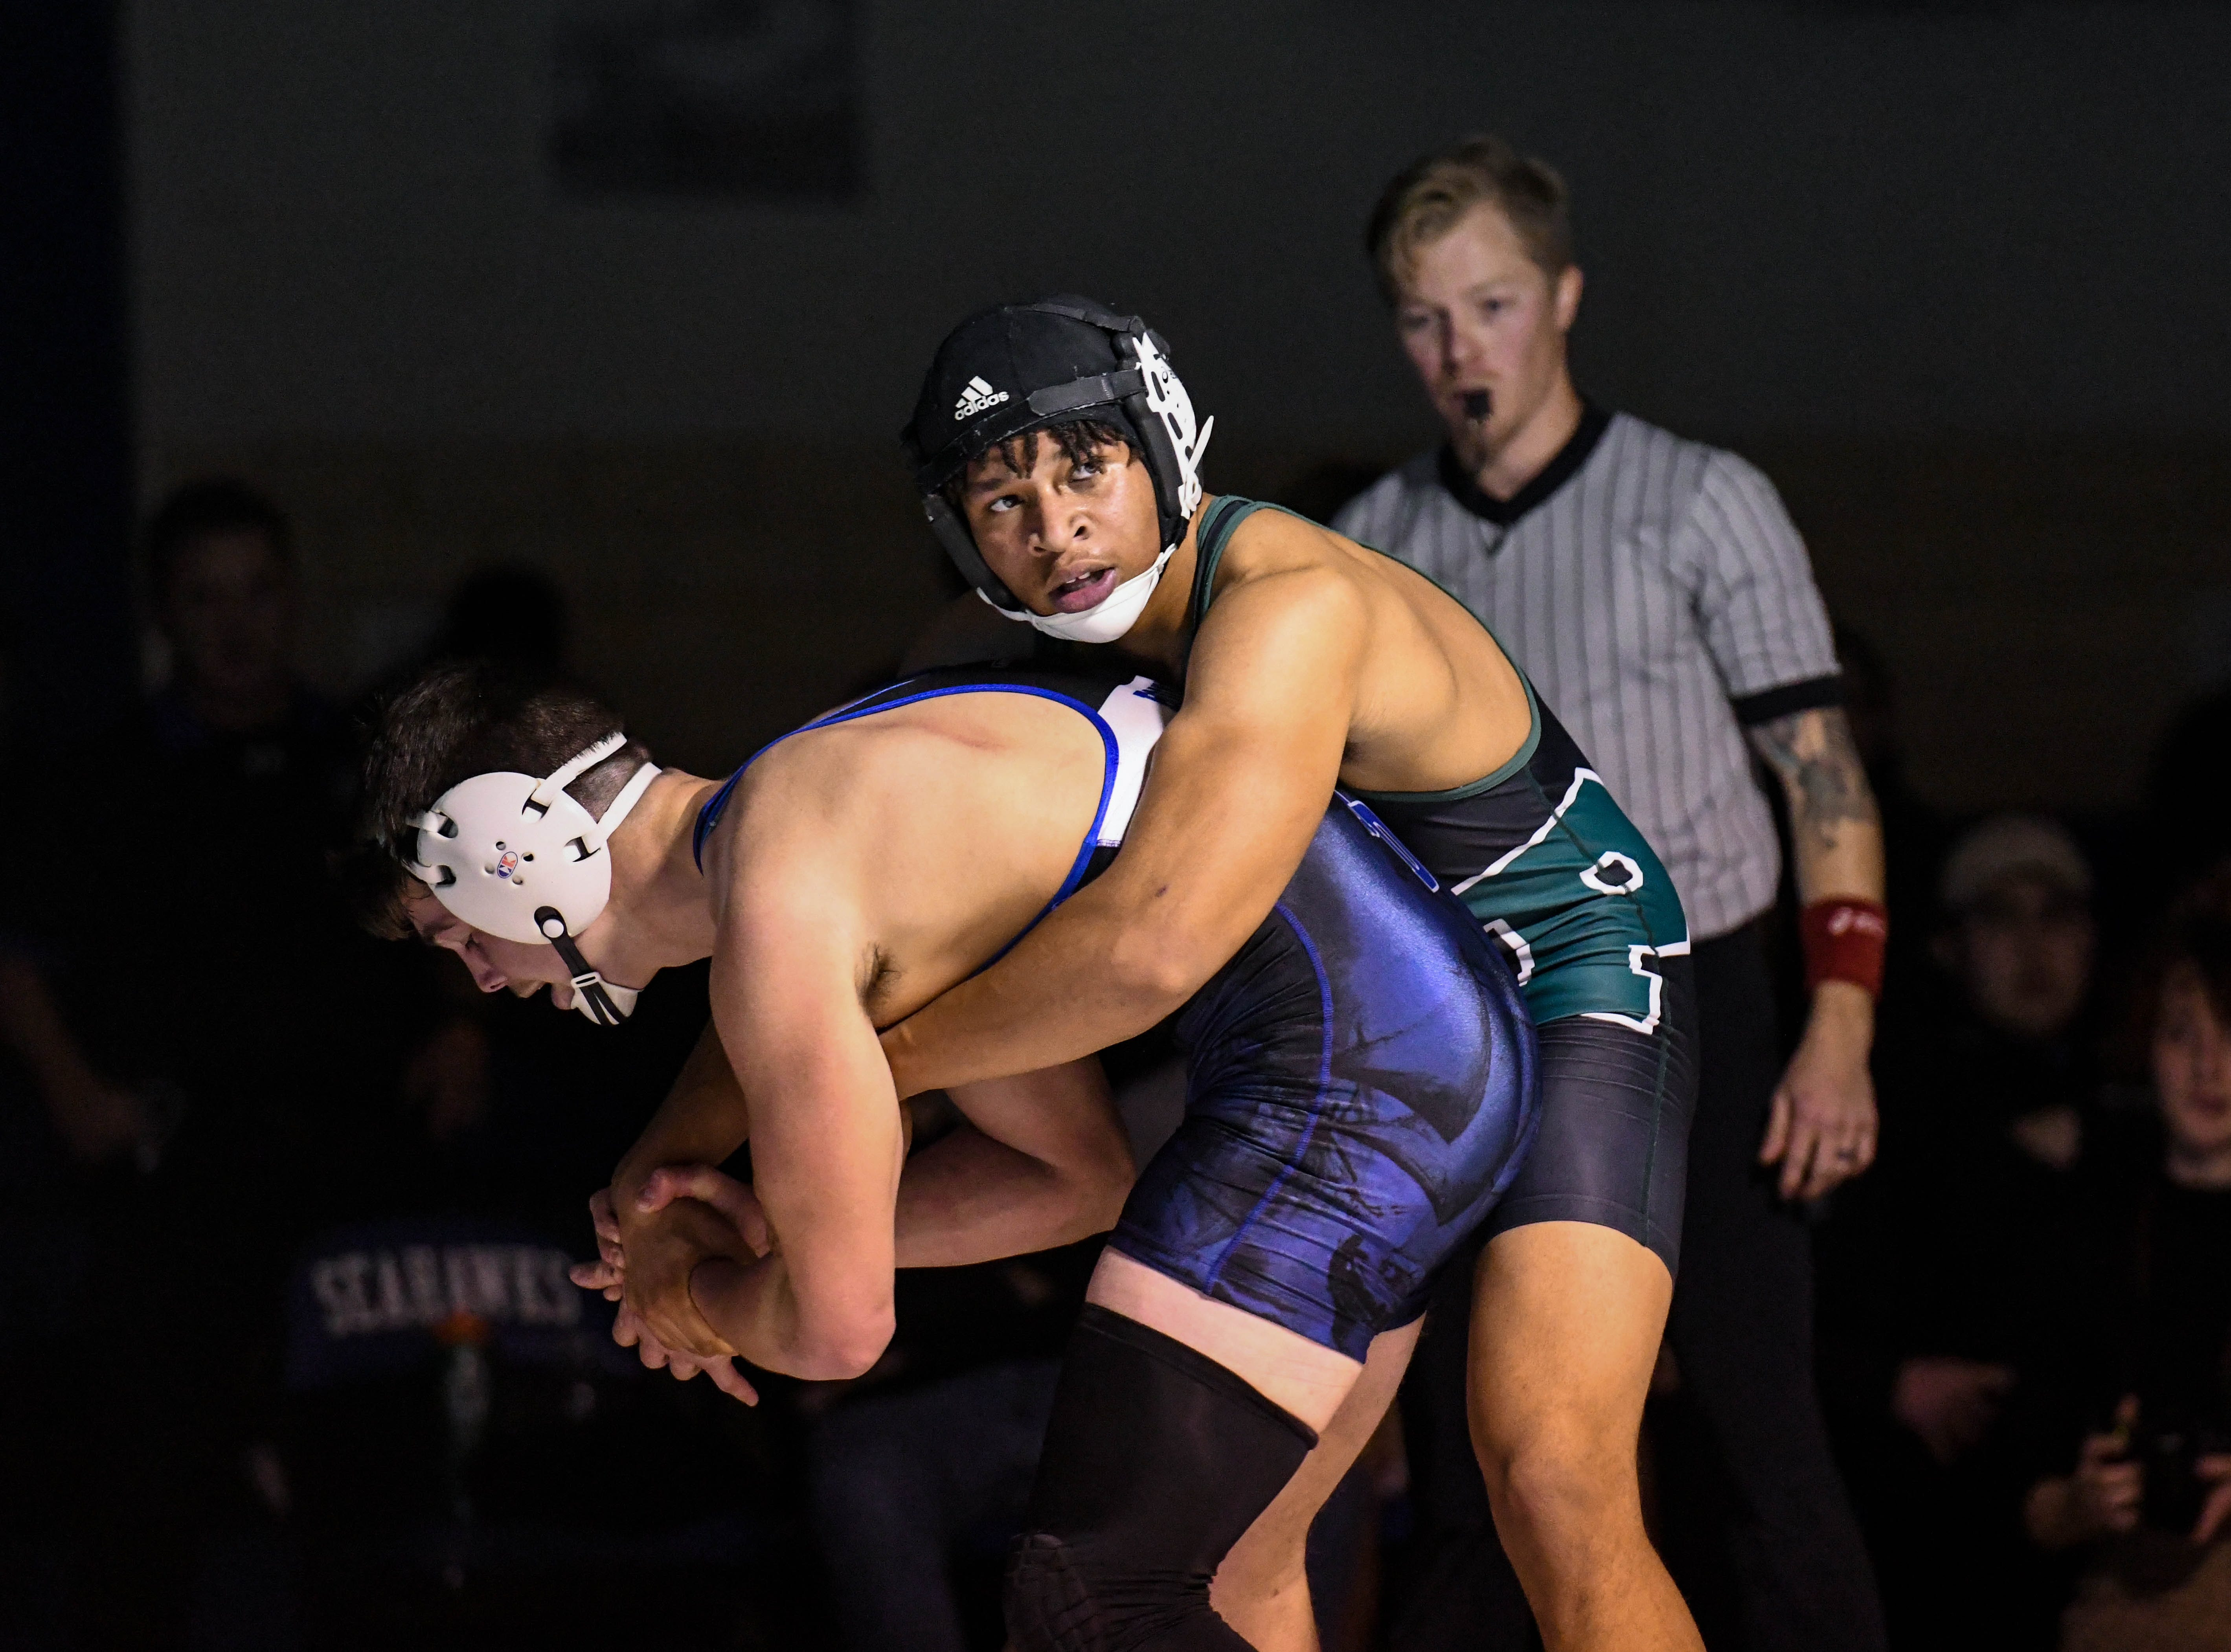 Stephen Decatur's Micah Bourne wrestles against Parkside's Justin Tucker in the 182 match up at Stephen Decatur High School on Wednesday, Jan. 23, 2019.